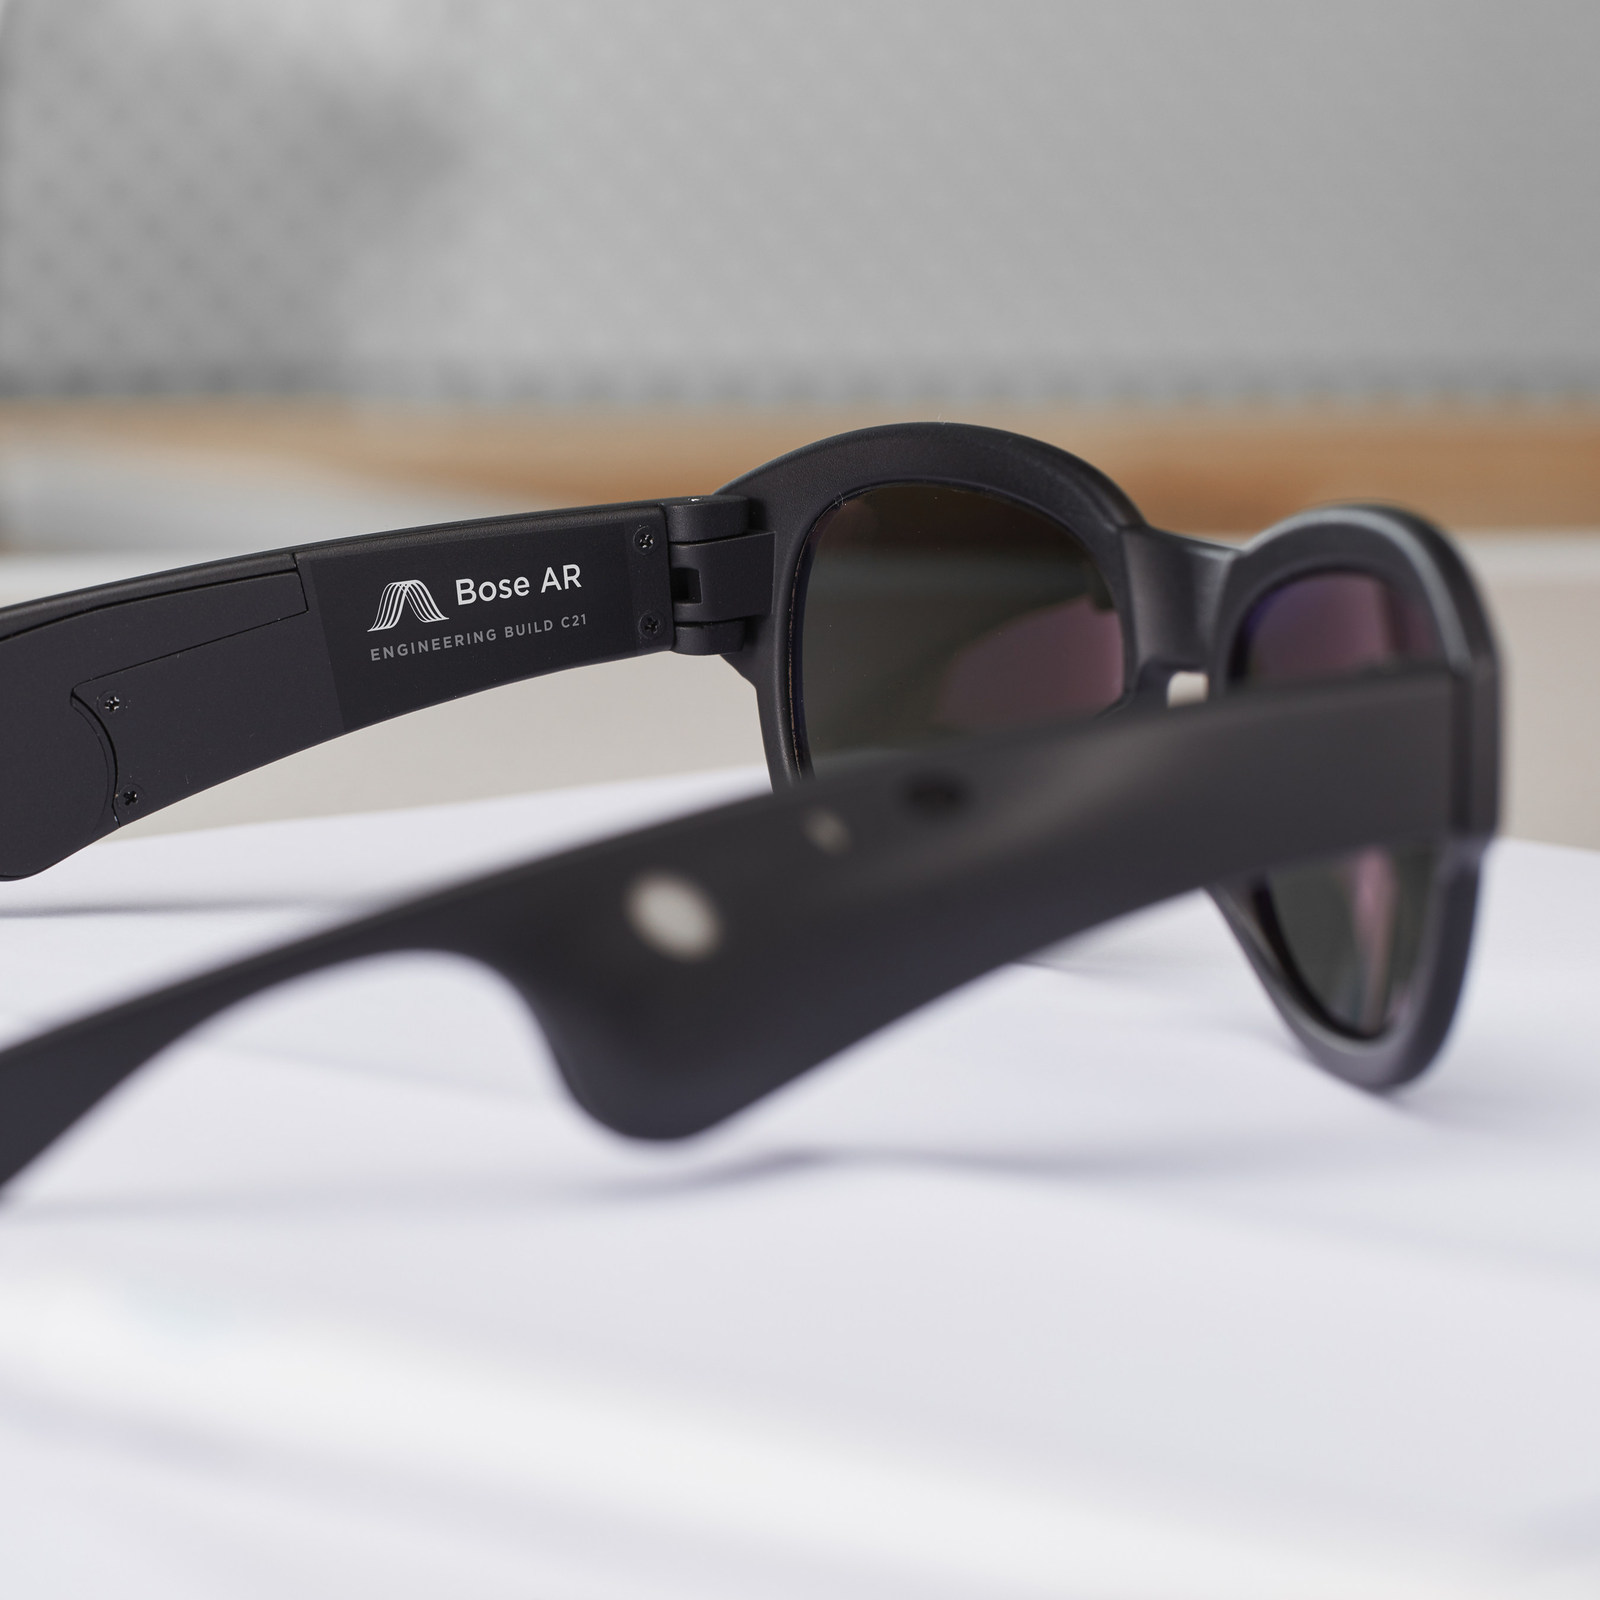 Bose's AR glasses are all about audio, not video